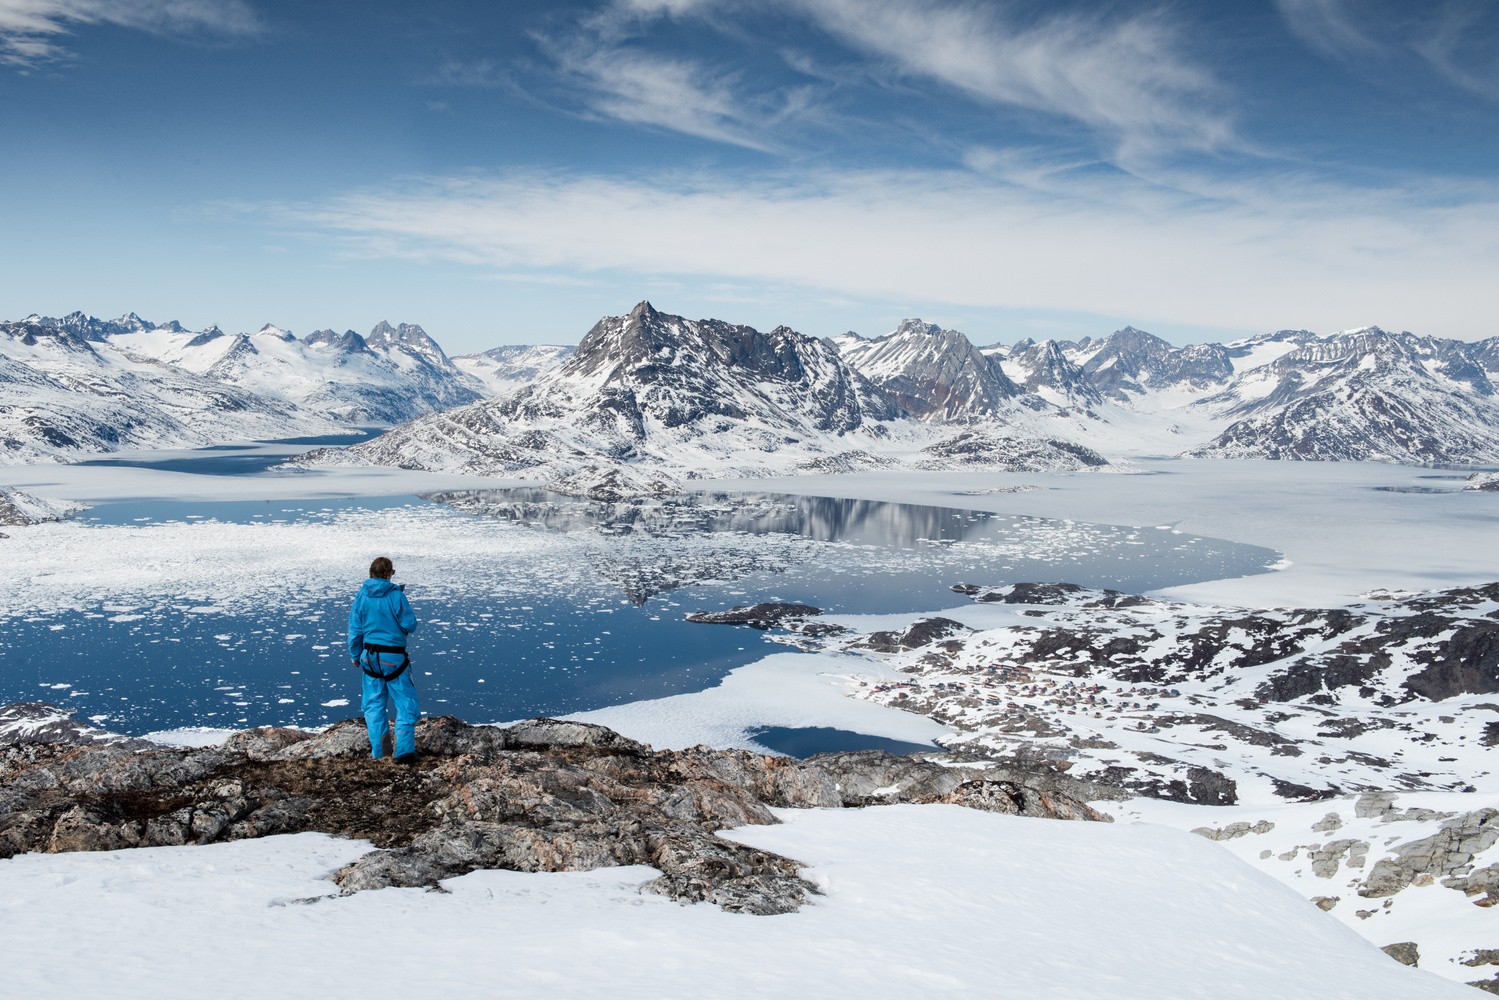 Overlooking the Inuits by Philip Field